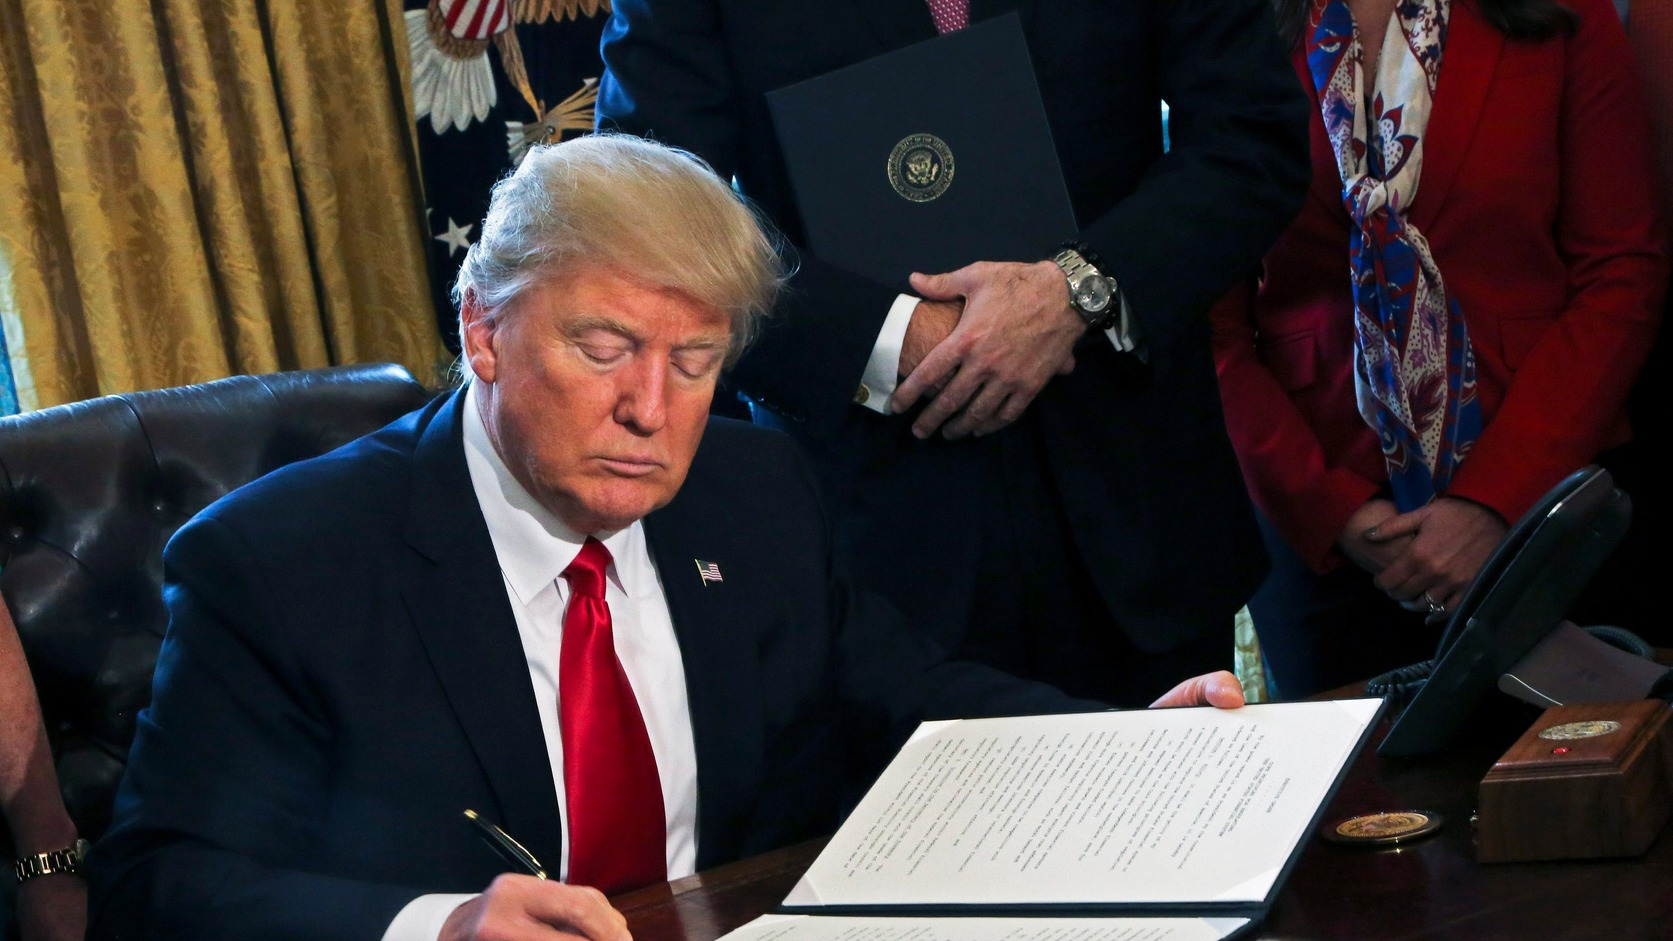 epa05769604 US President Donald J. Trump signs an executive order in the Oval Office of the White House, in Washington, DC, USA, 03 February 2017. Trump signed several executive orders including an order to review the Dodd-Frank Wall Street to roll back financial regulations of the Obama era.  EPA/Aude Guerrucci / POOL